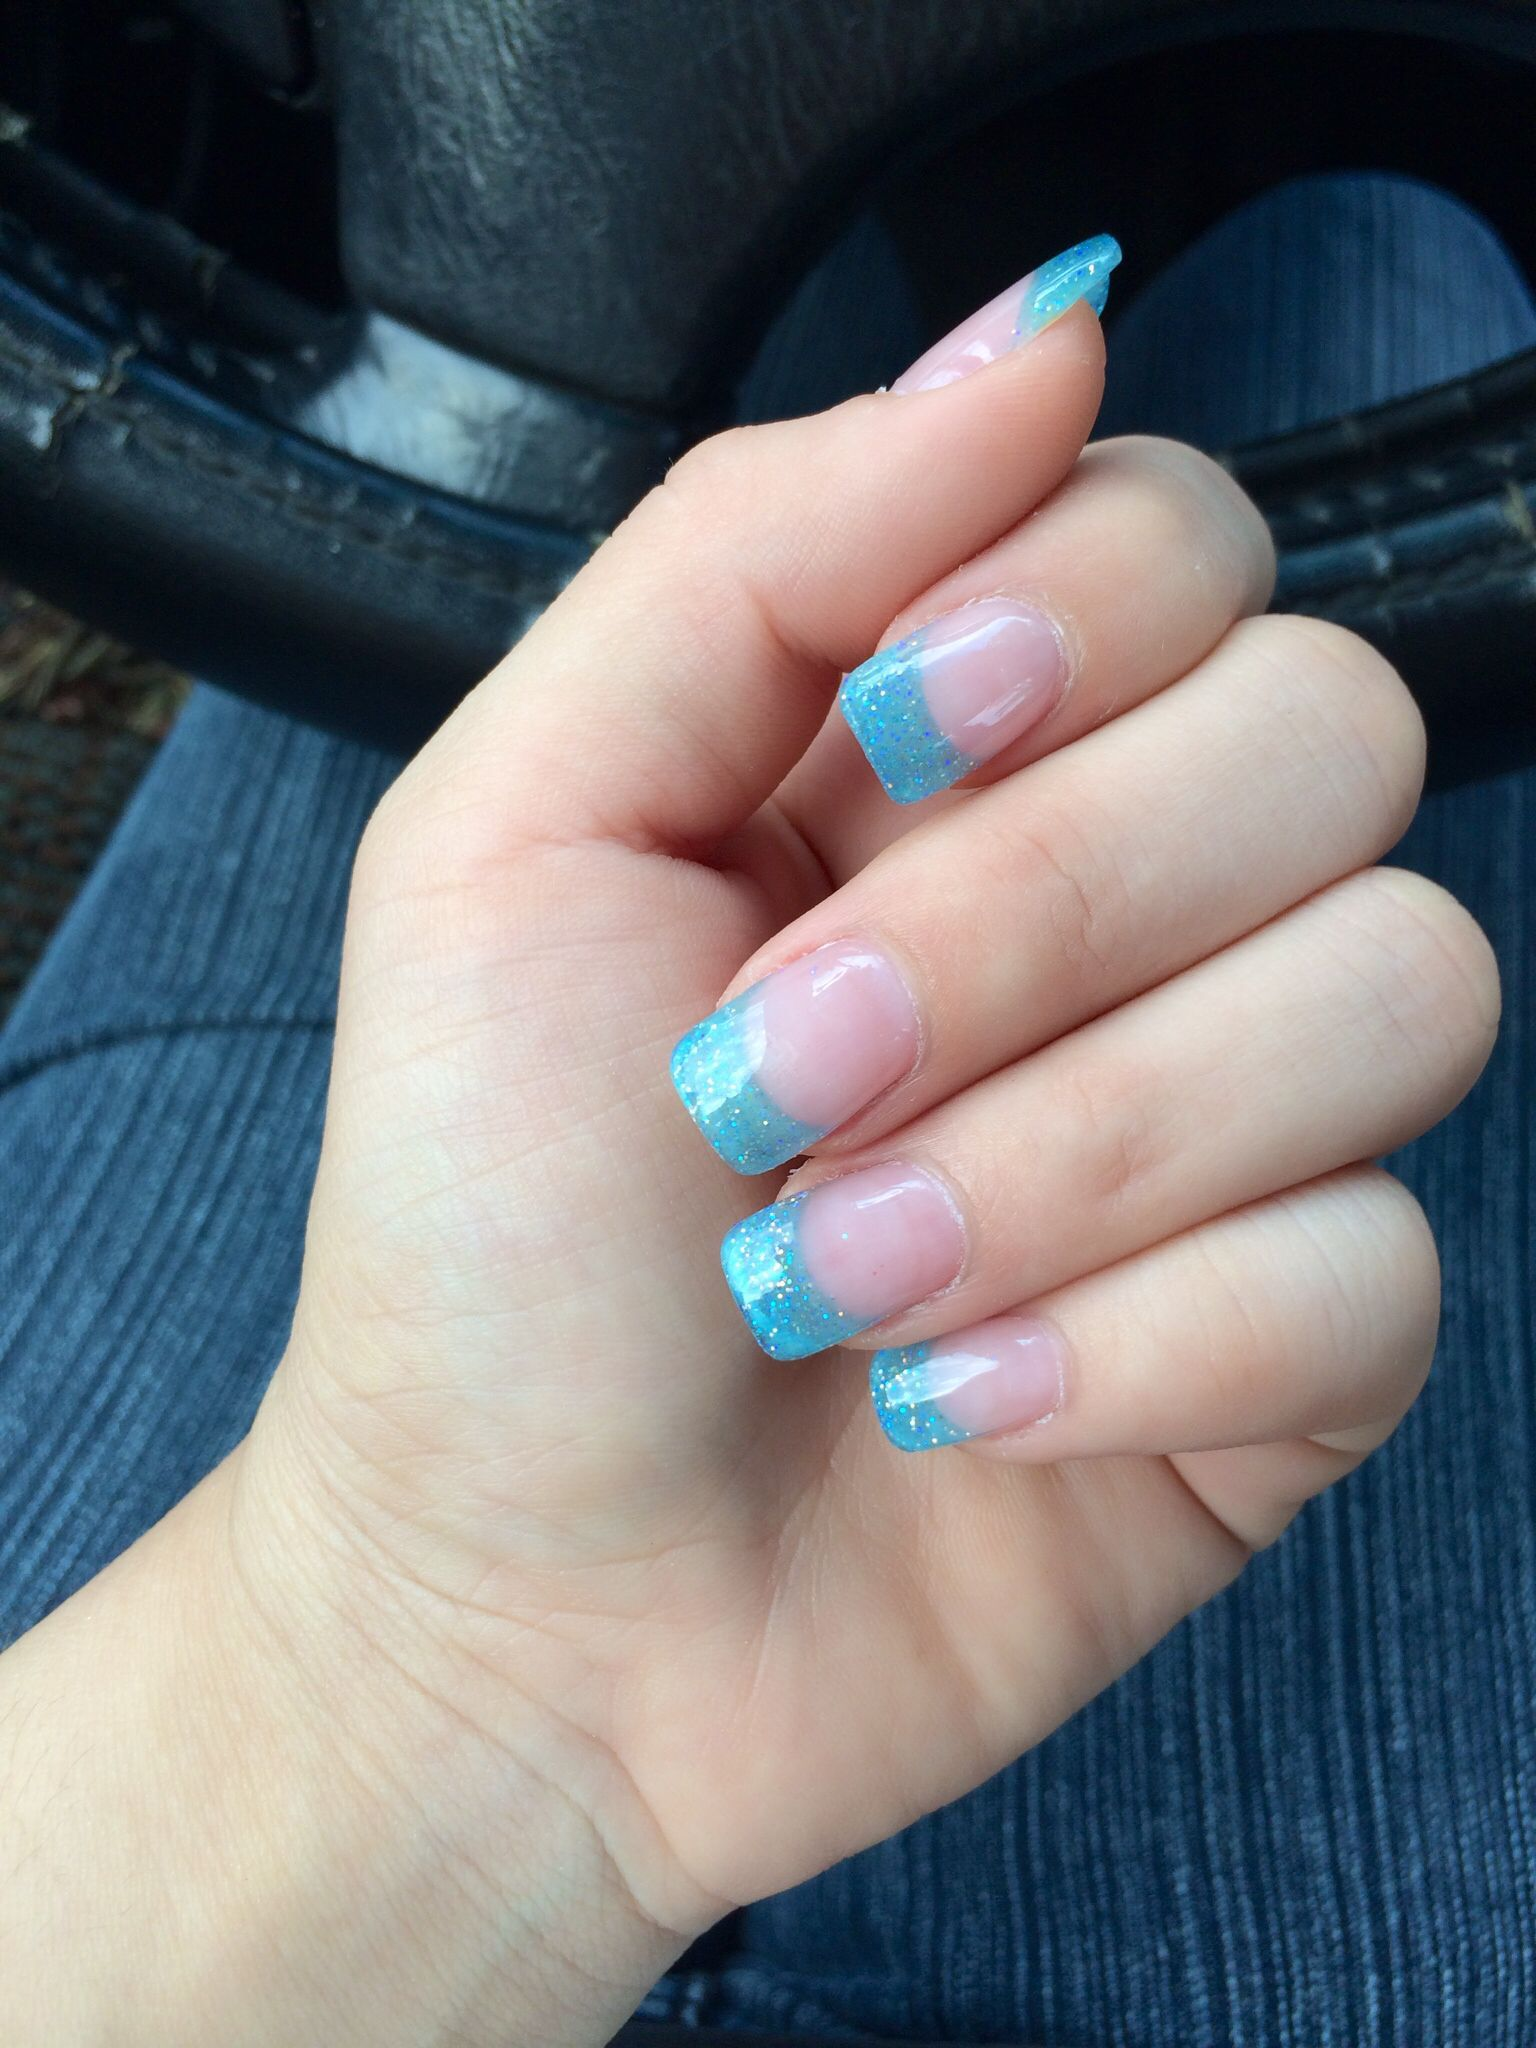 Sparkly blue nails tips photo